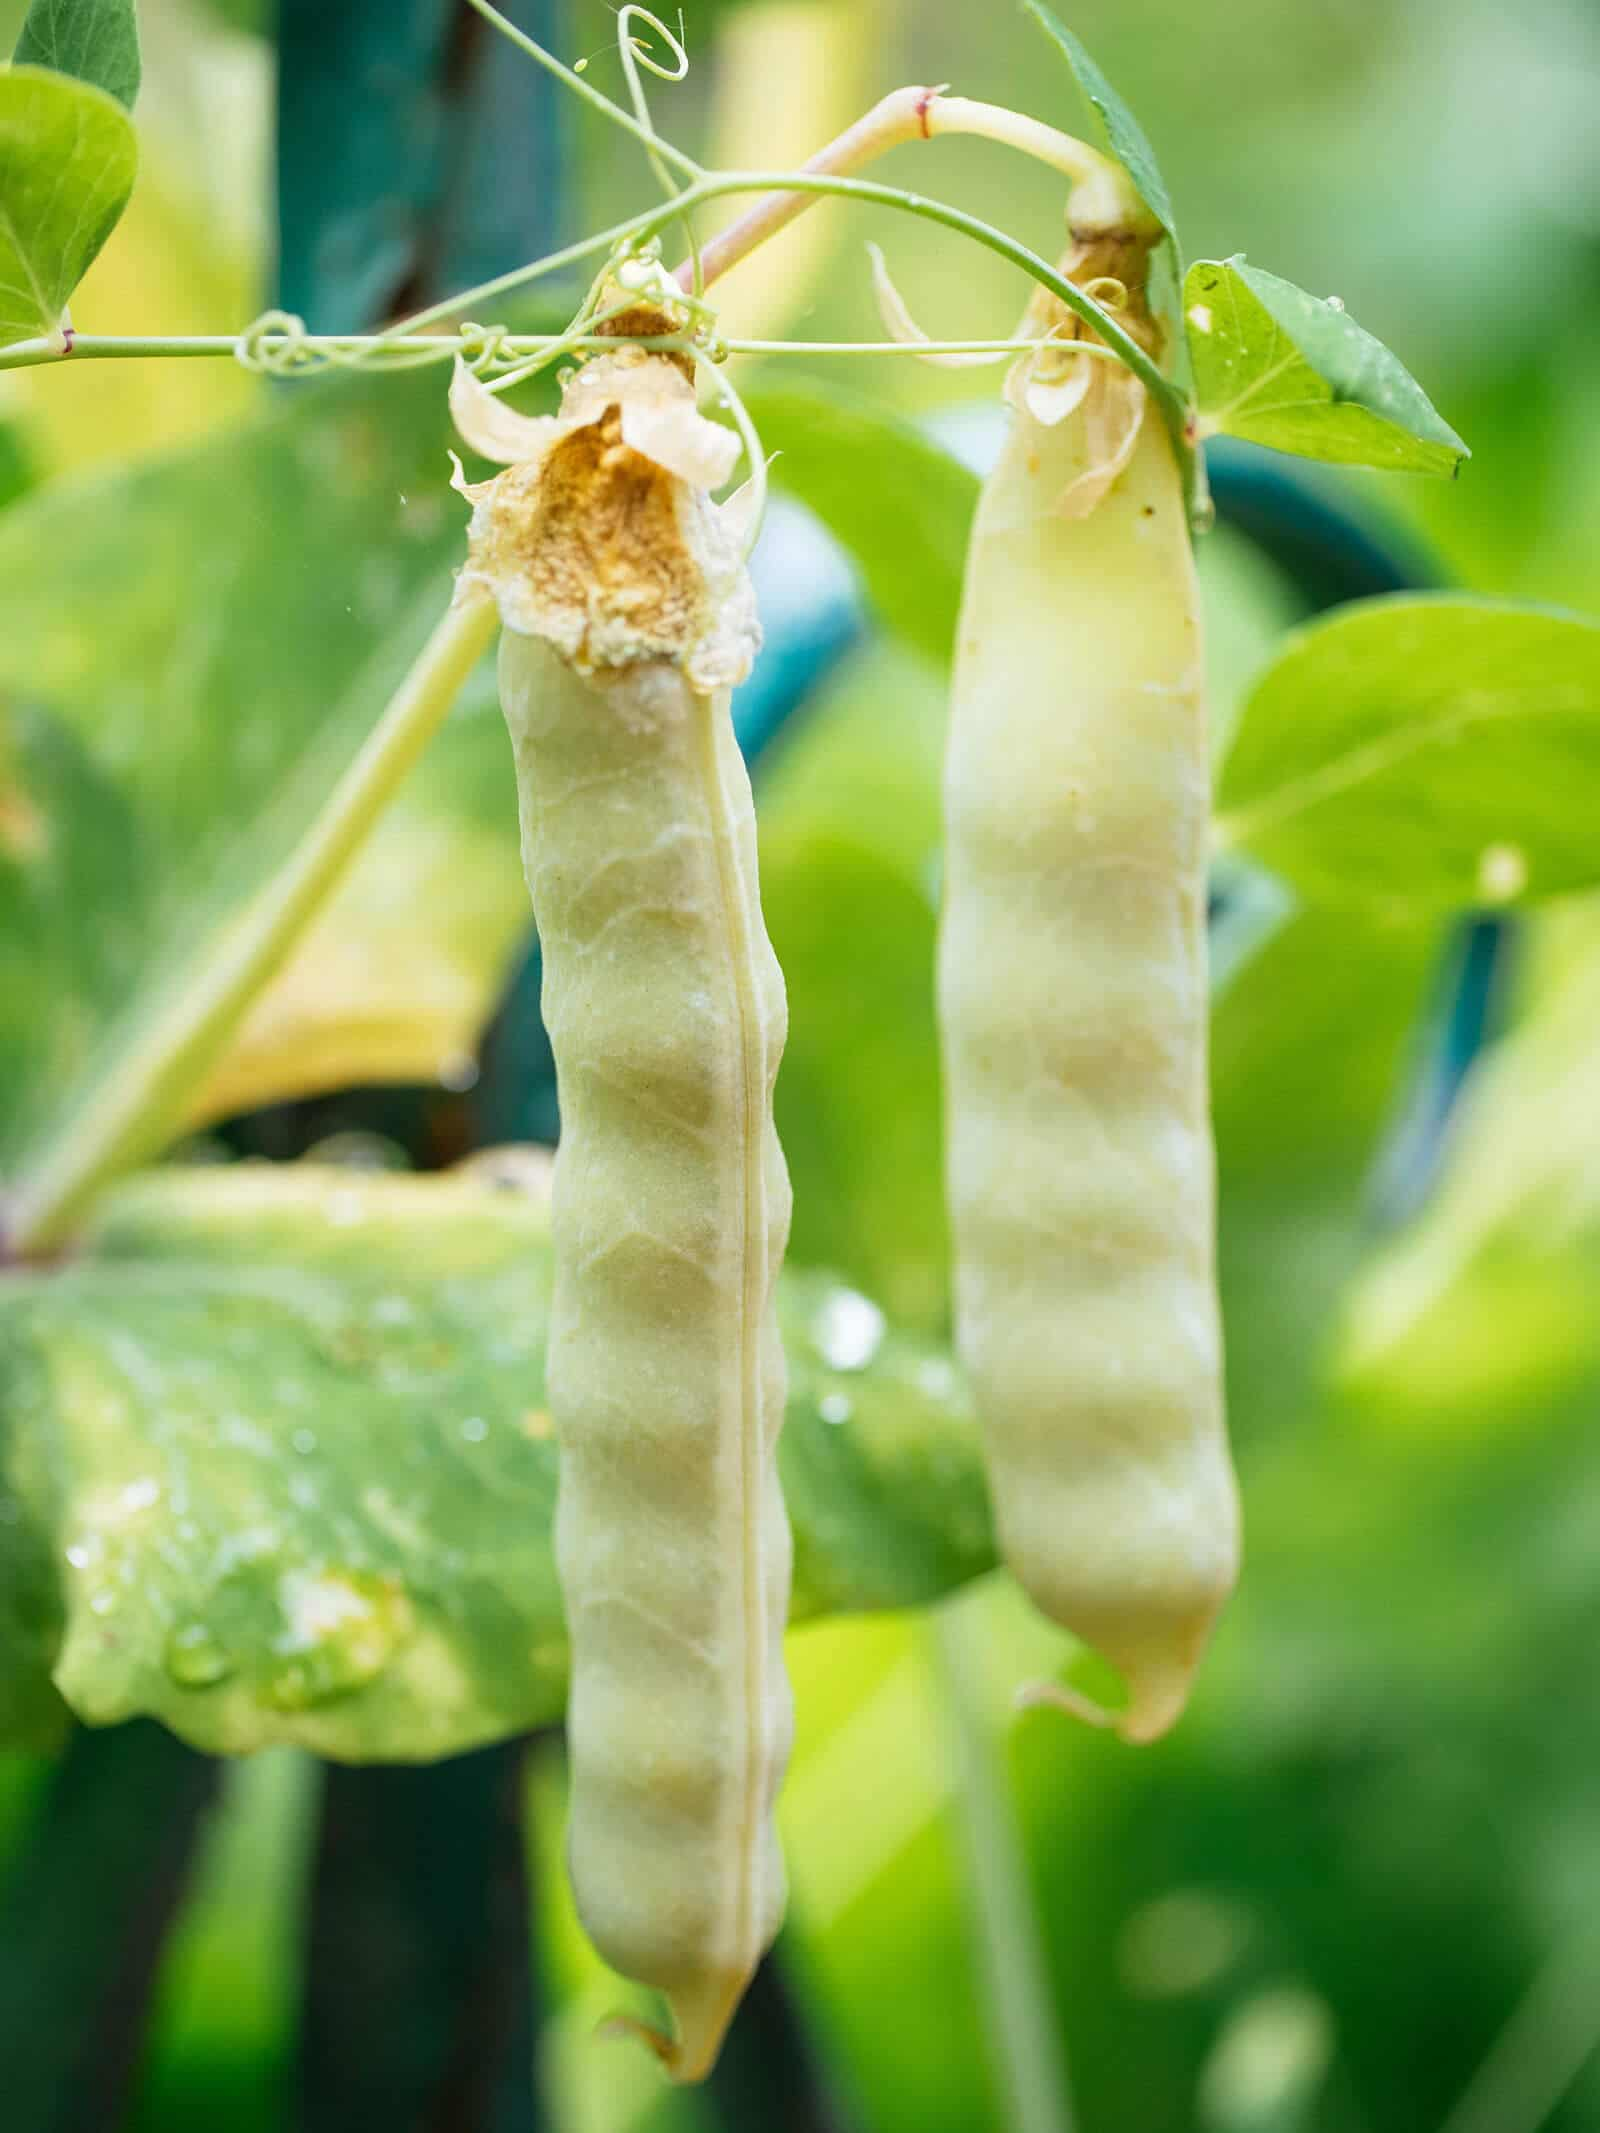 Mature golden snow pea pods bulging with seeds